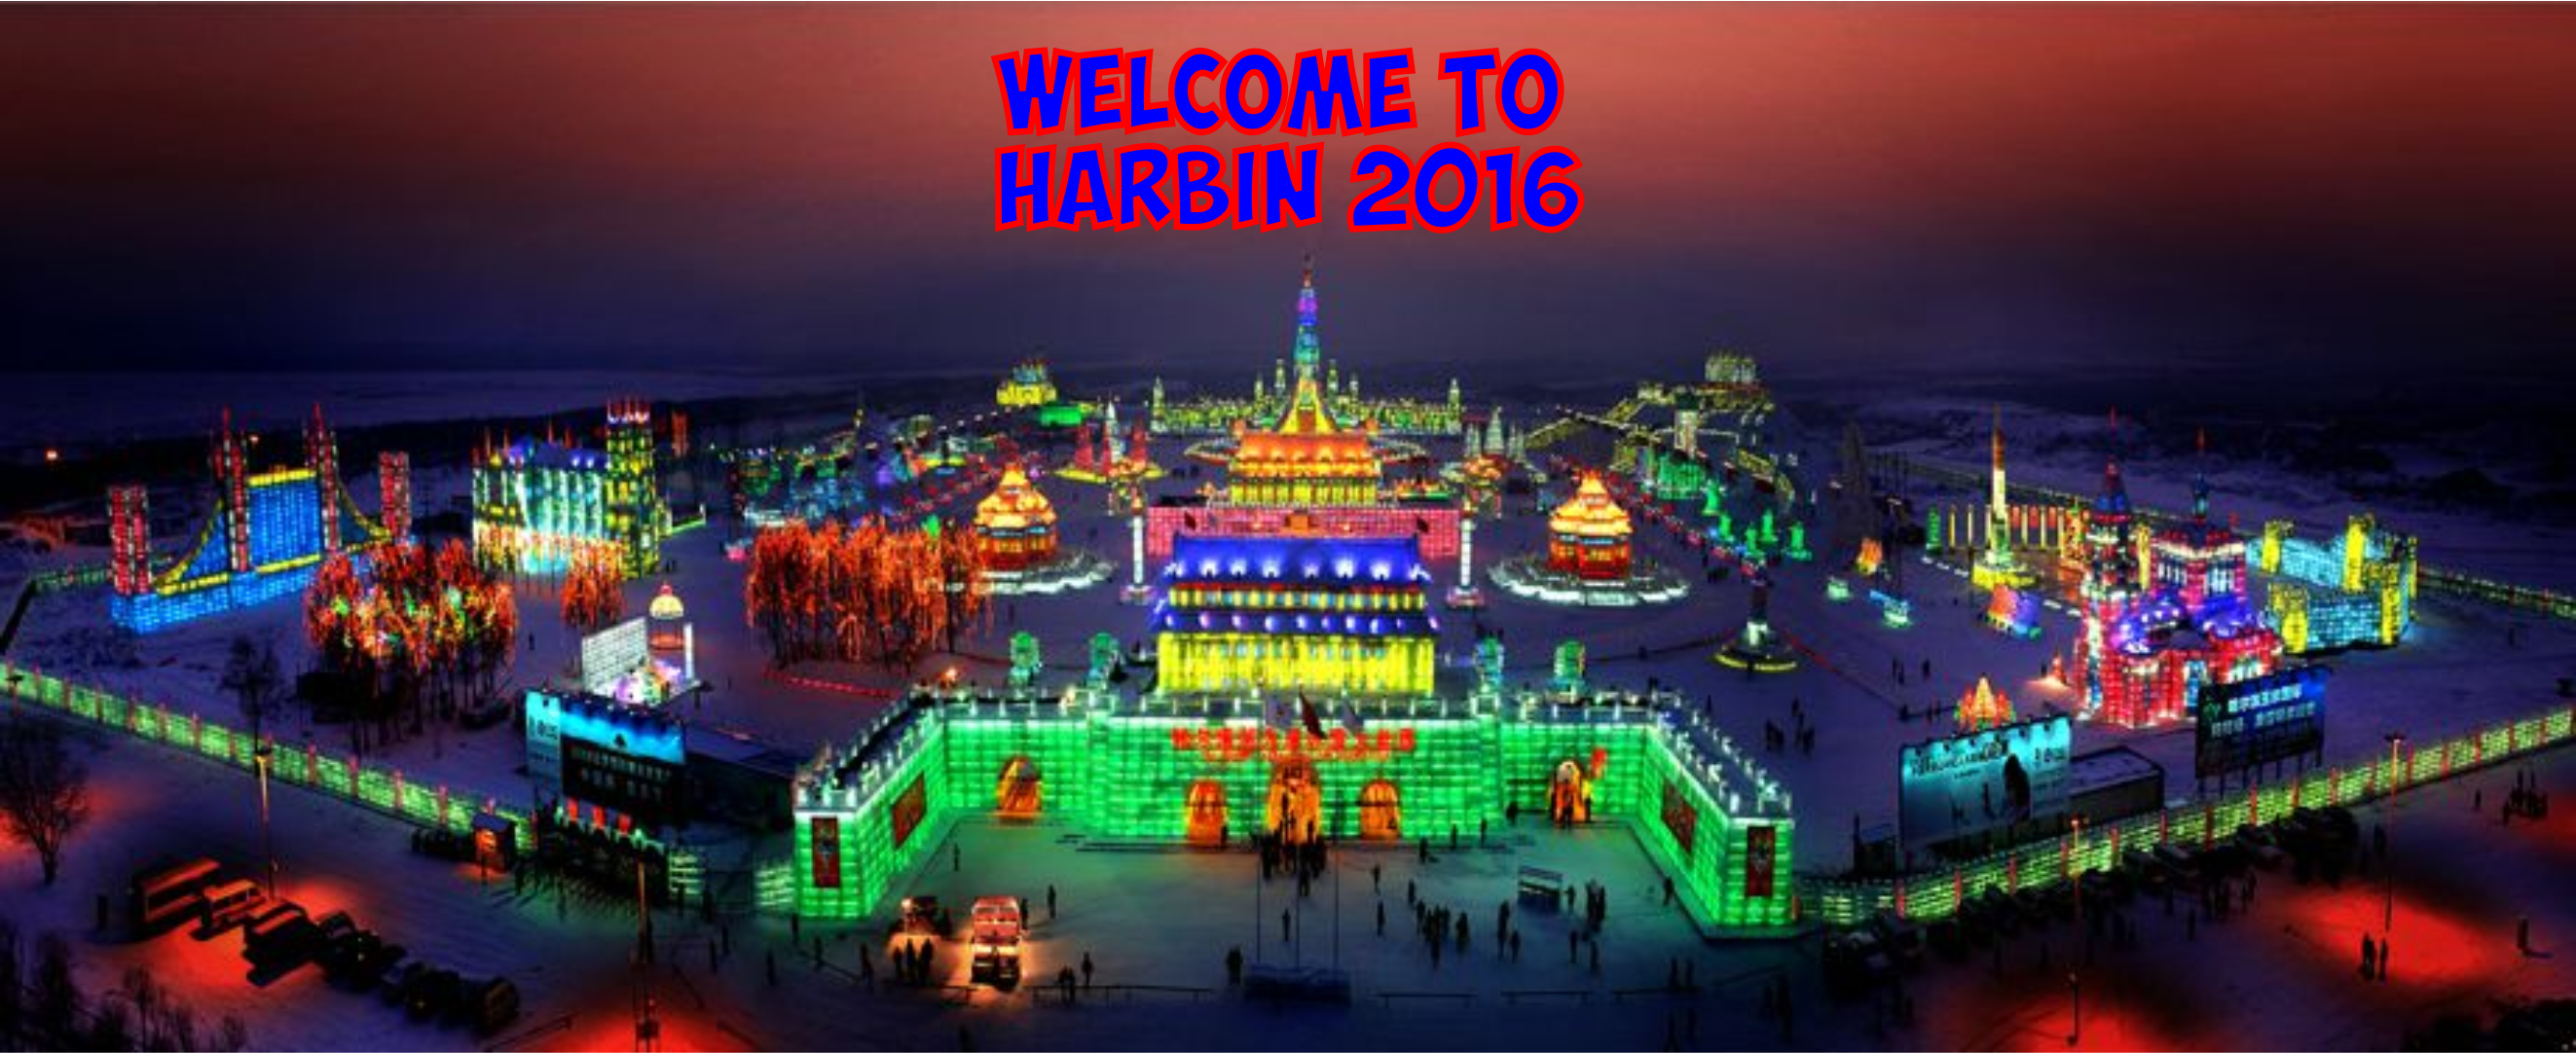 Welcome to Harbin 2016